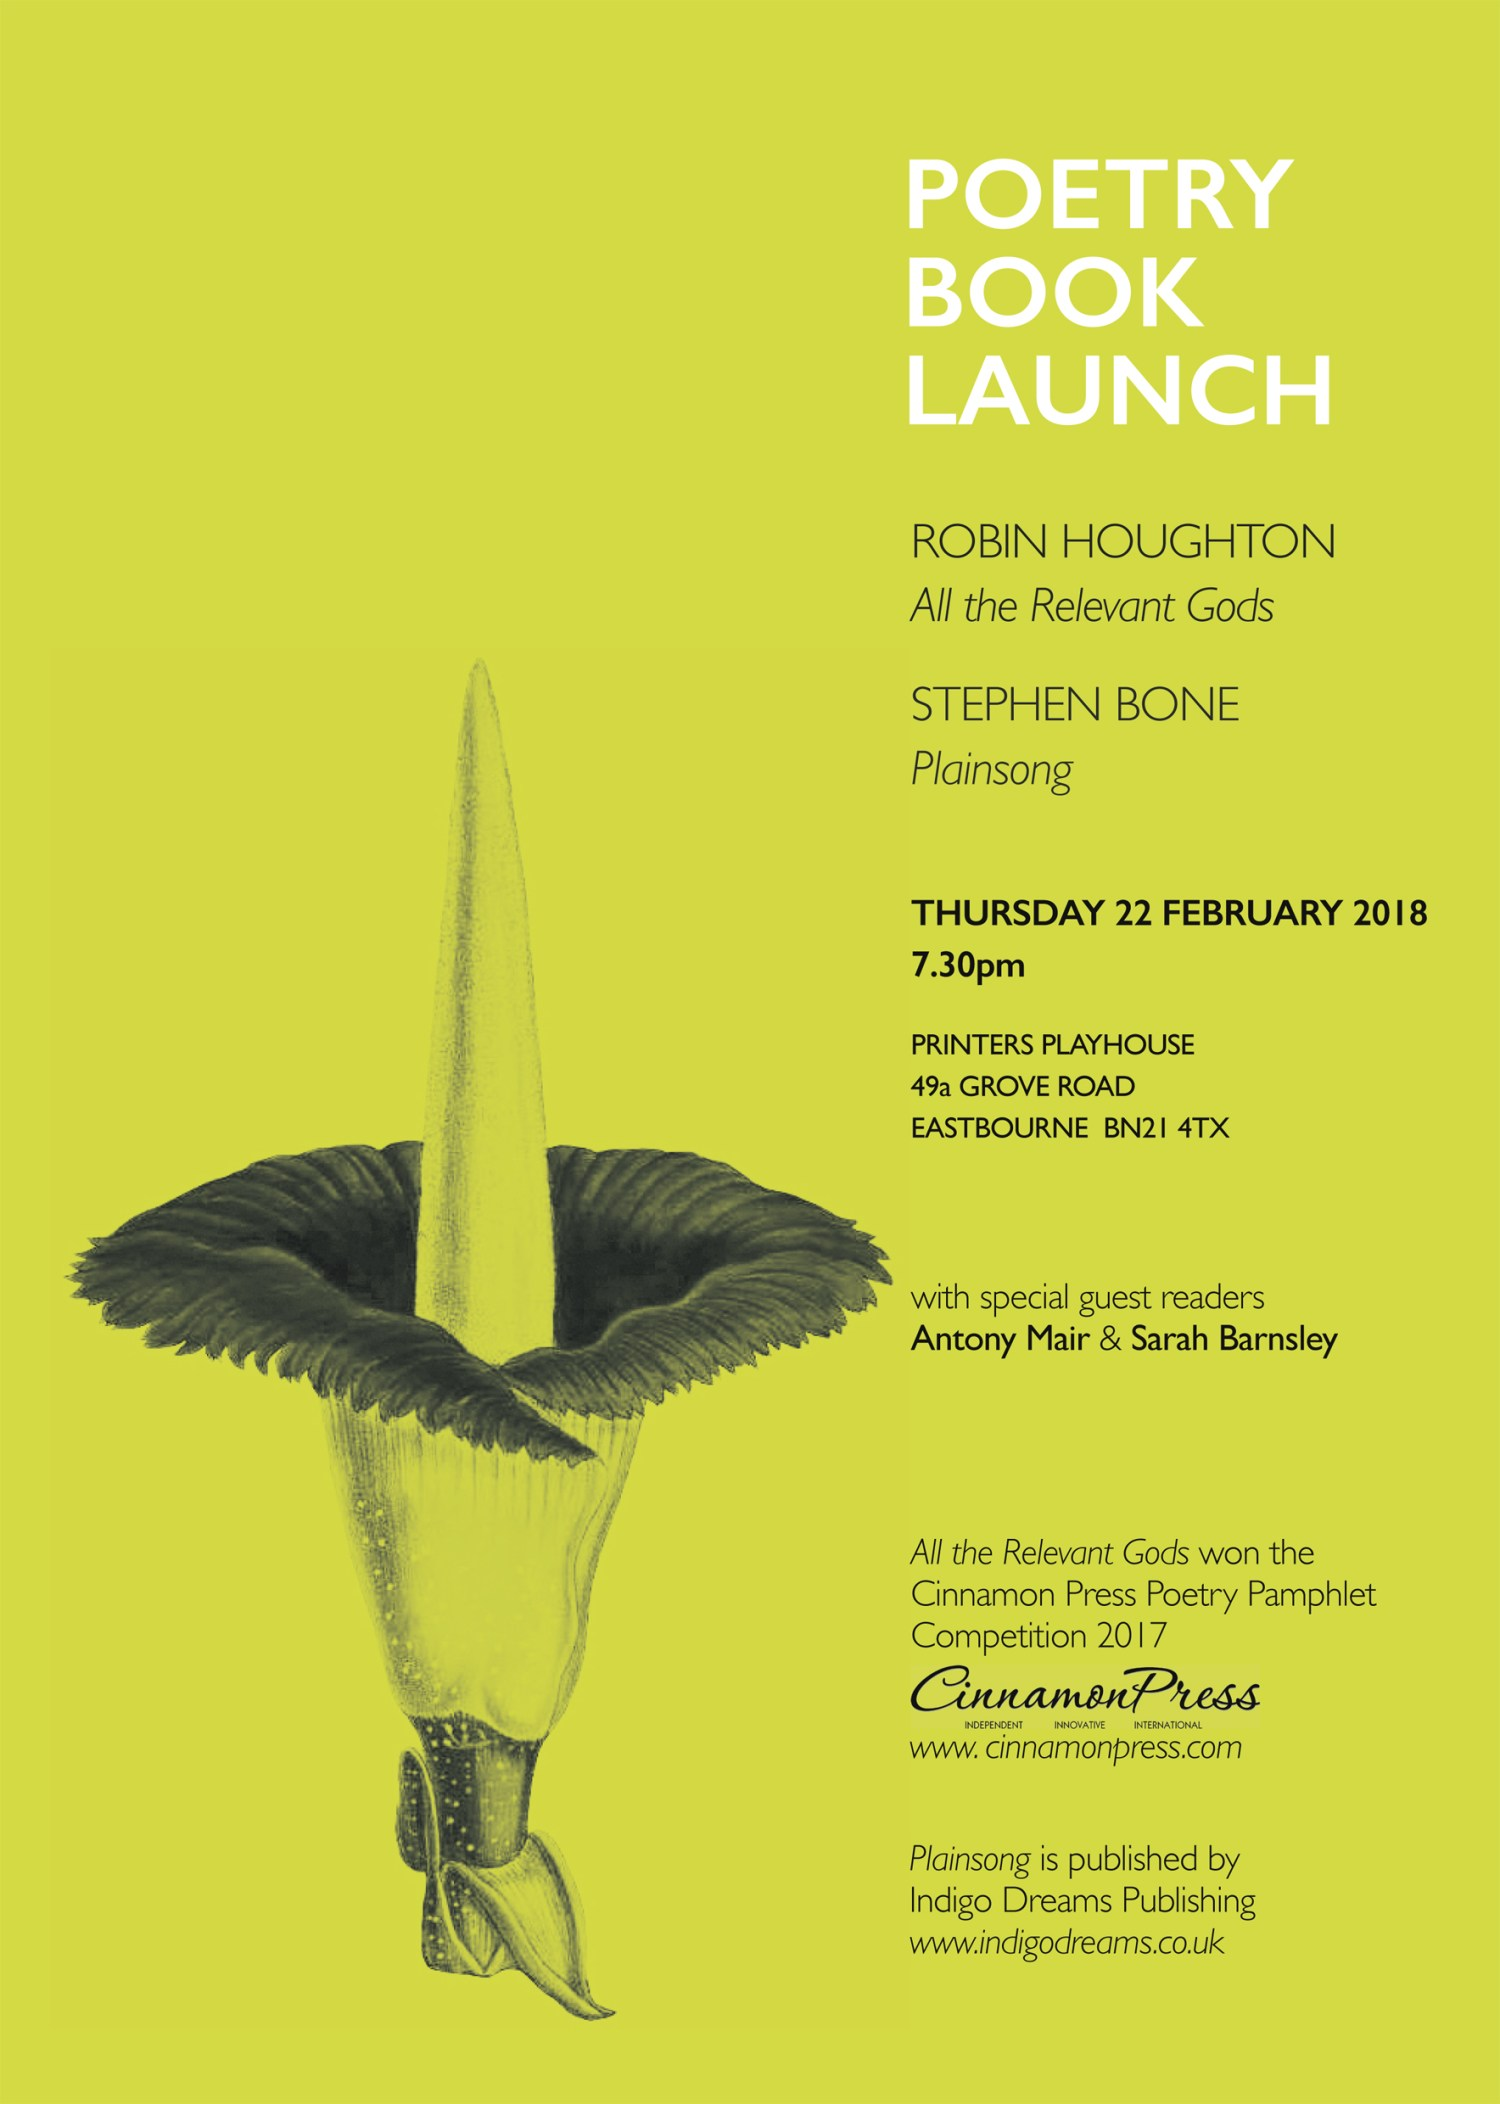 Poetry book launch flyer